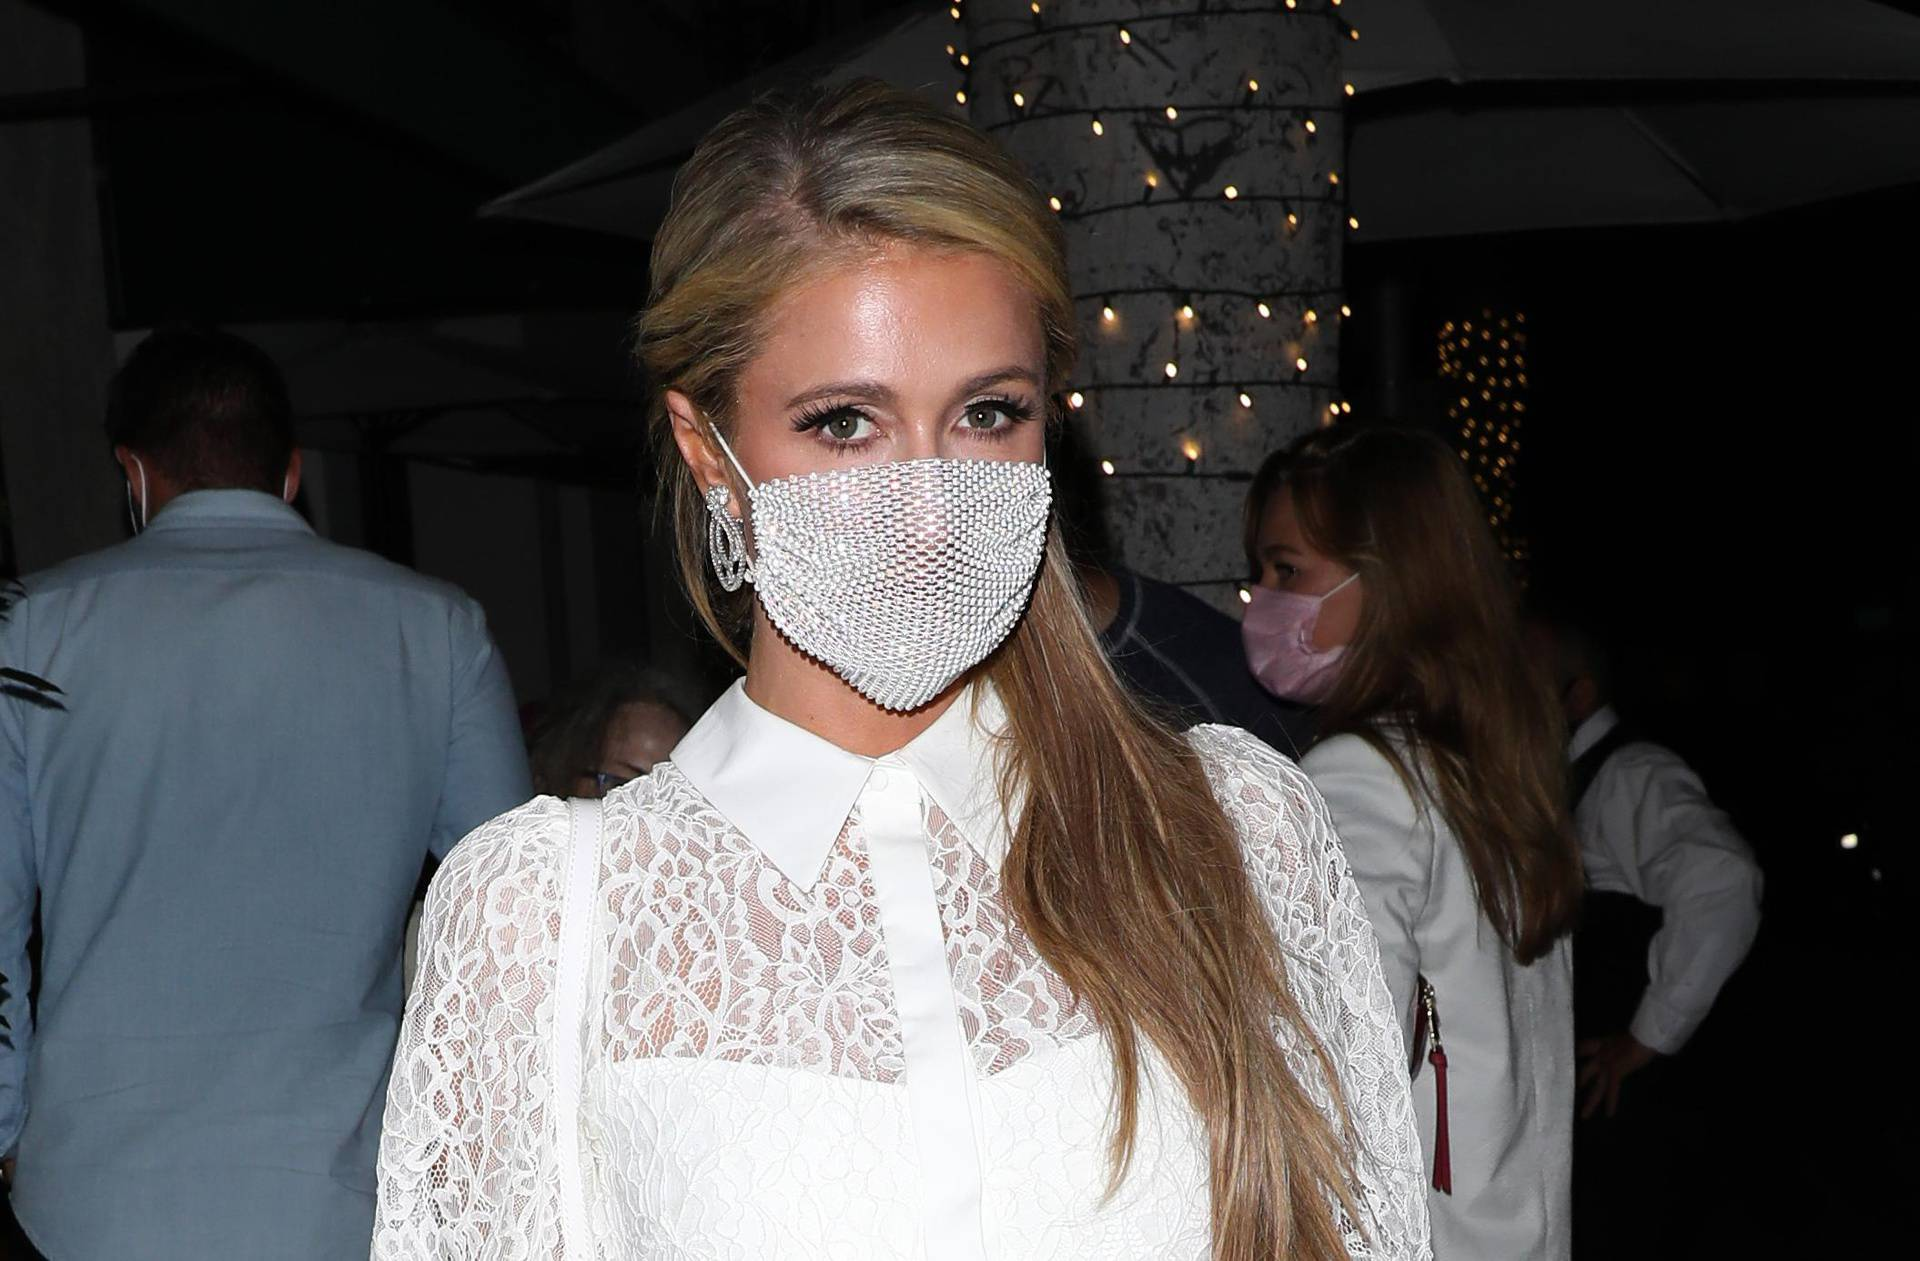 EXCLUSIVE: Paris Hilton stuns in a all white dress as she dines at Madeo restaurant with friends